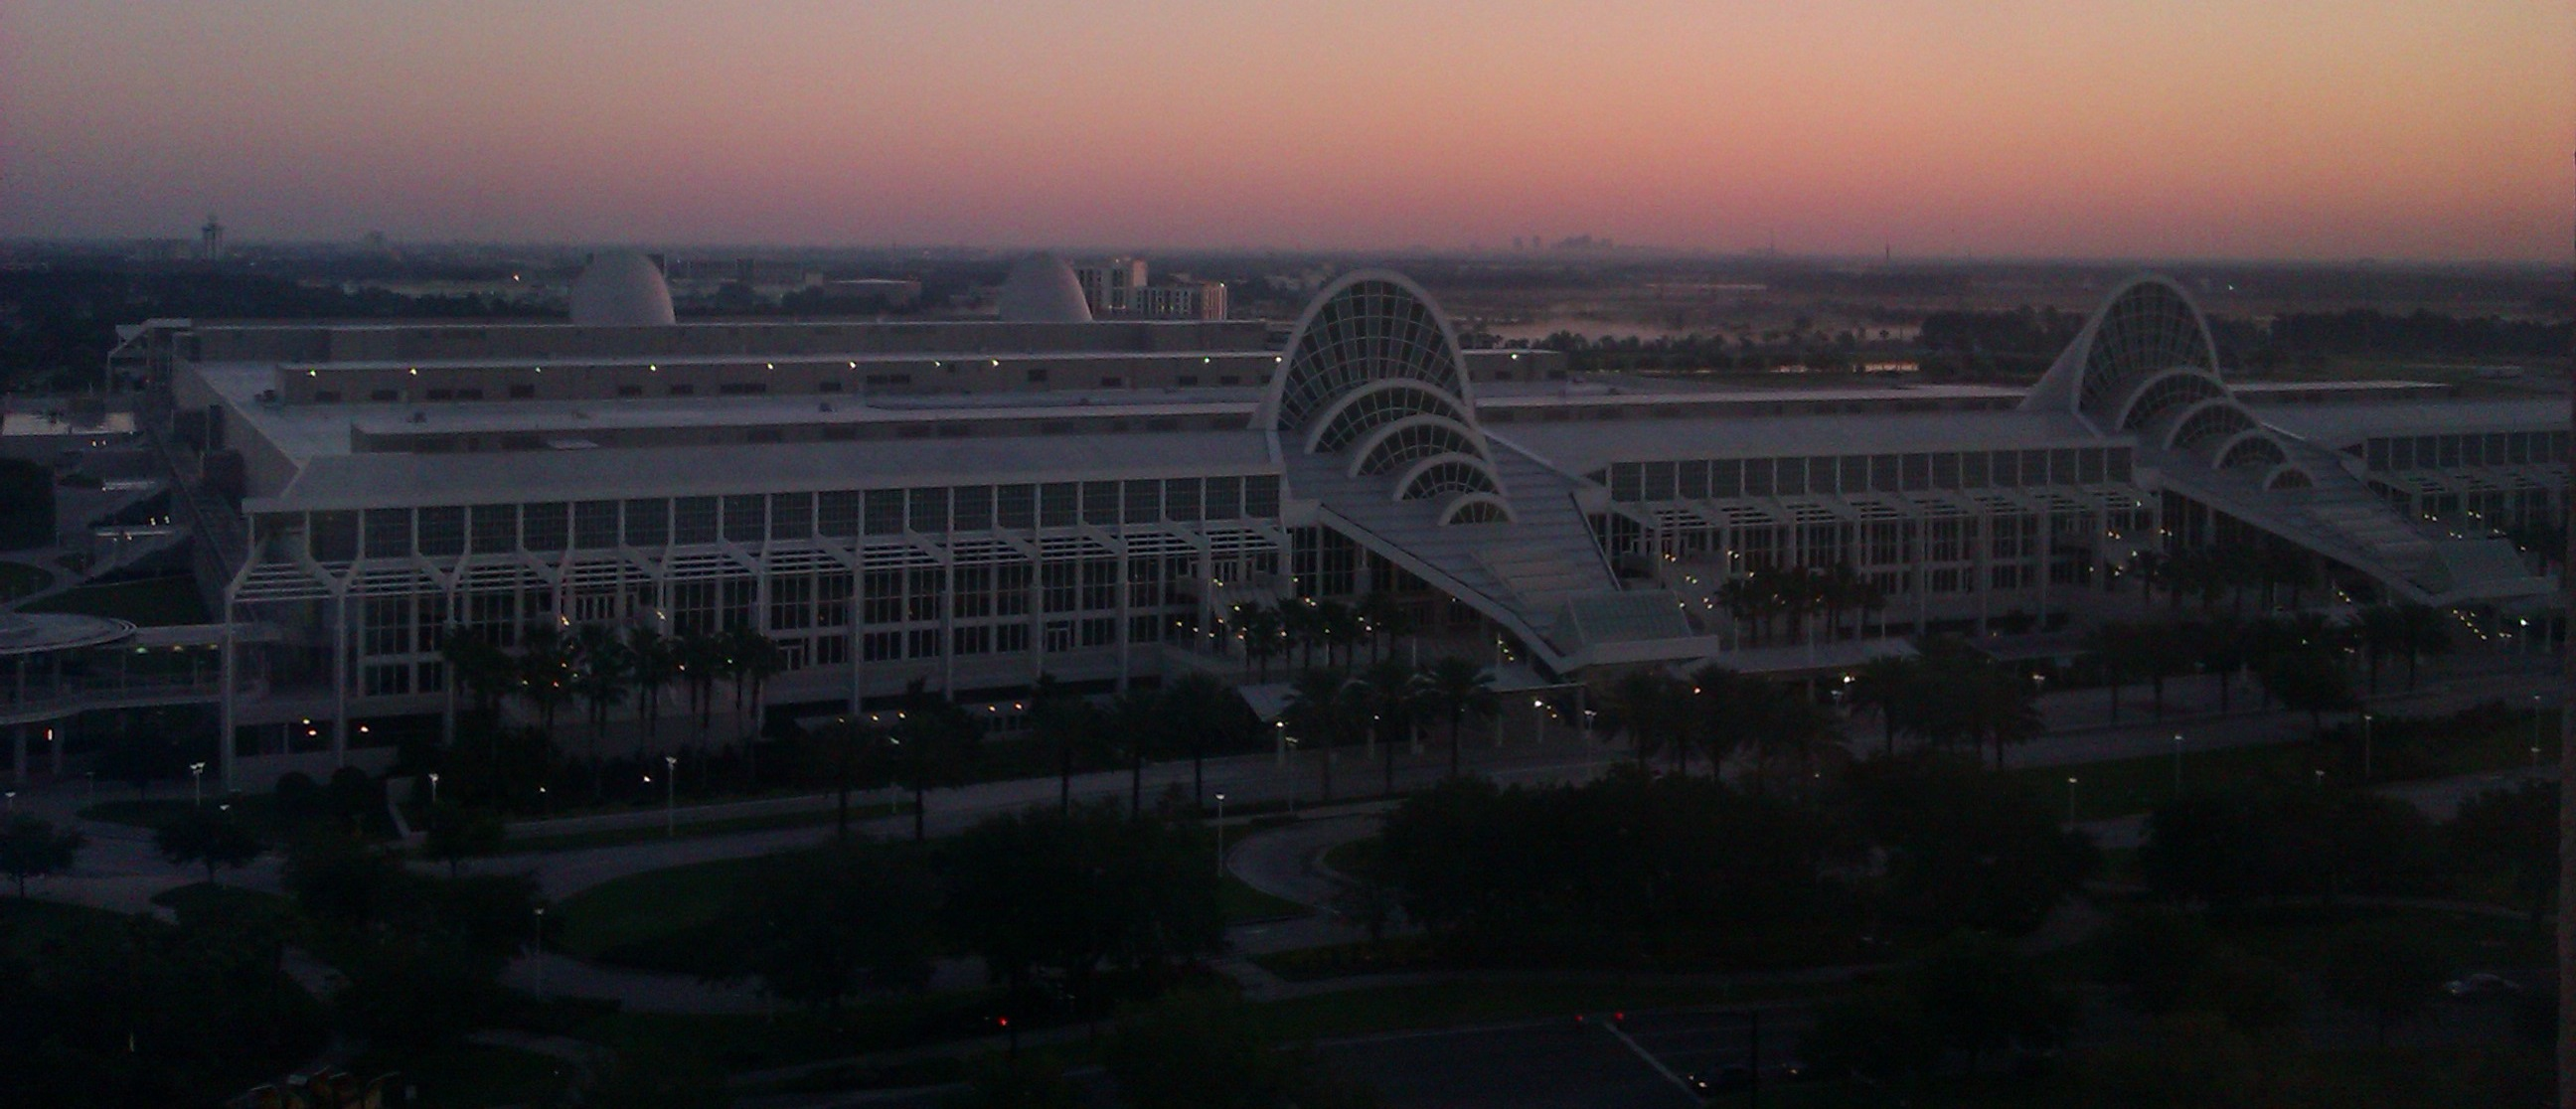 The Orange County Convention Center in Orlando housed the 2014 RFID Journal Live Tradeshow.